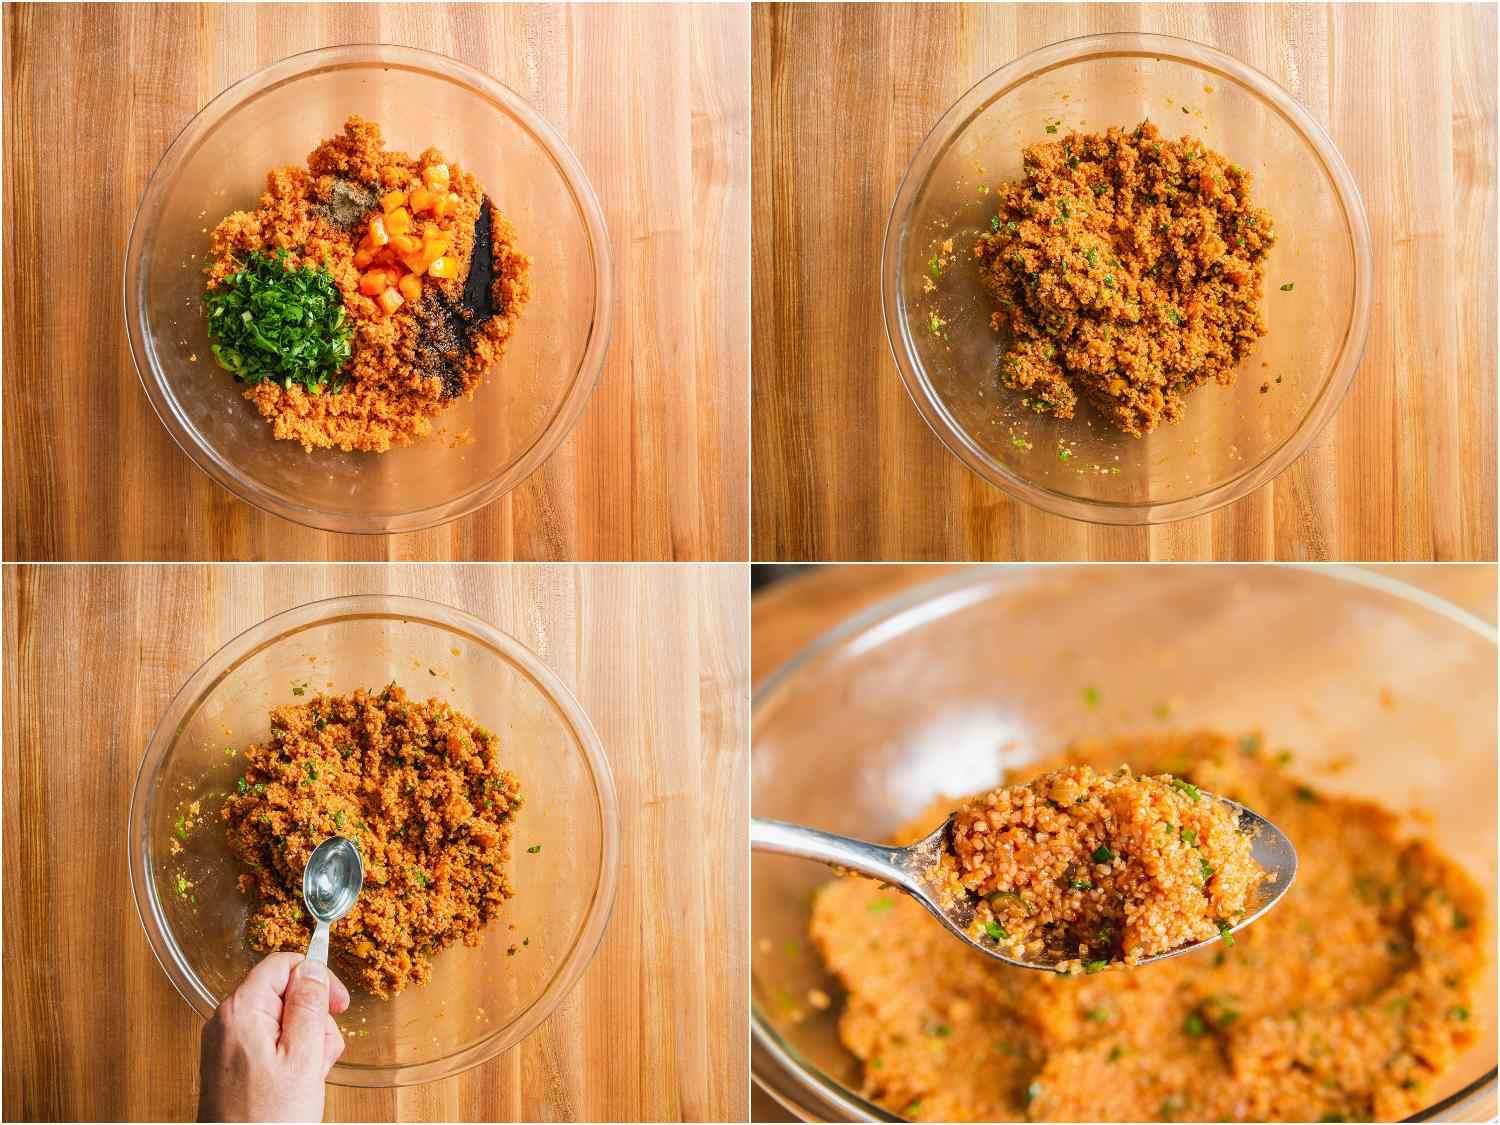 Mixing tomatoes, herbs, and water with bulgur to achieve proper texture for eetch.